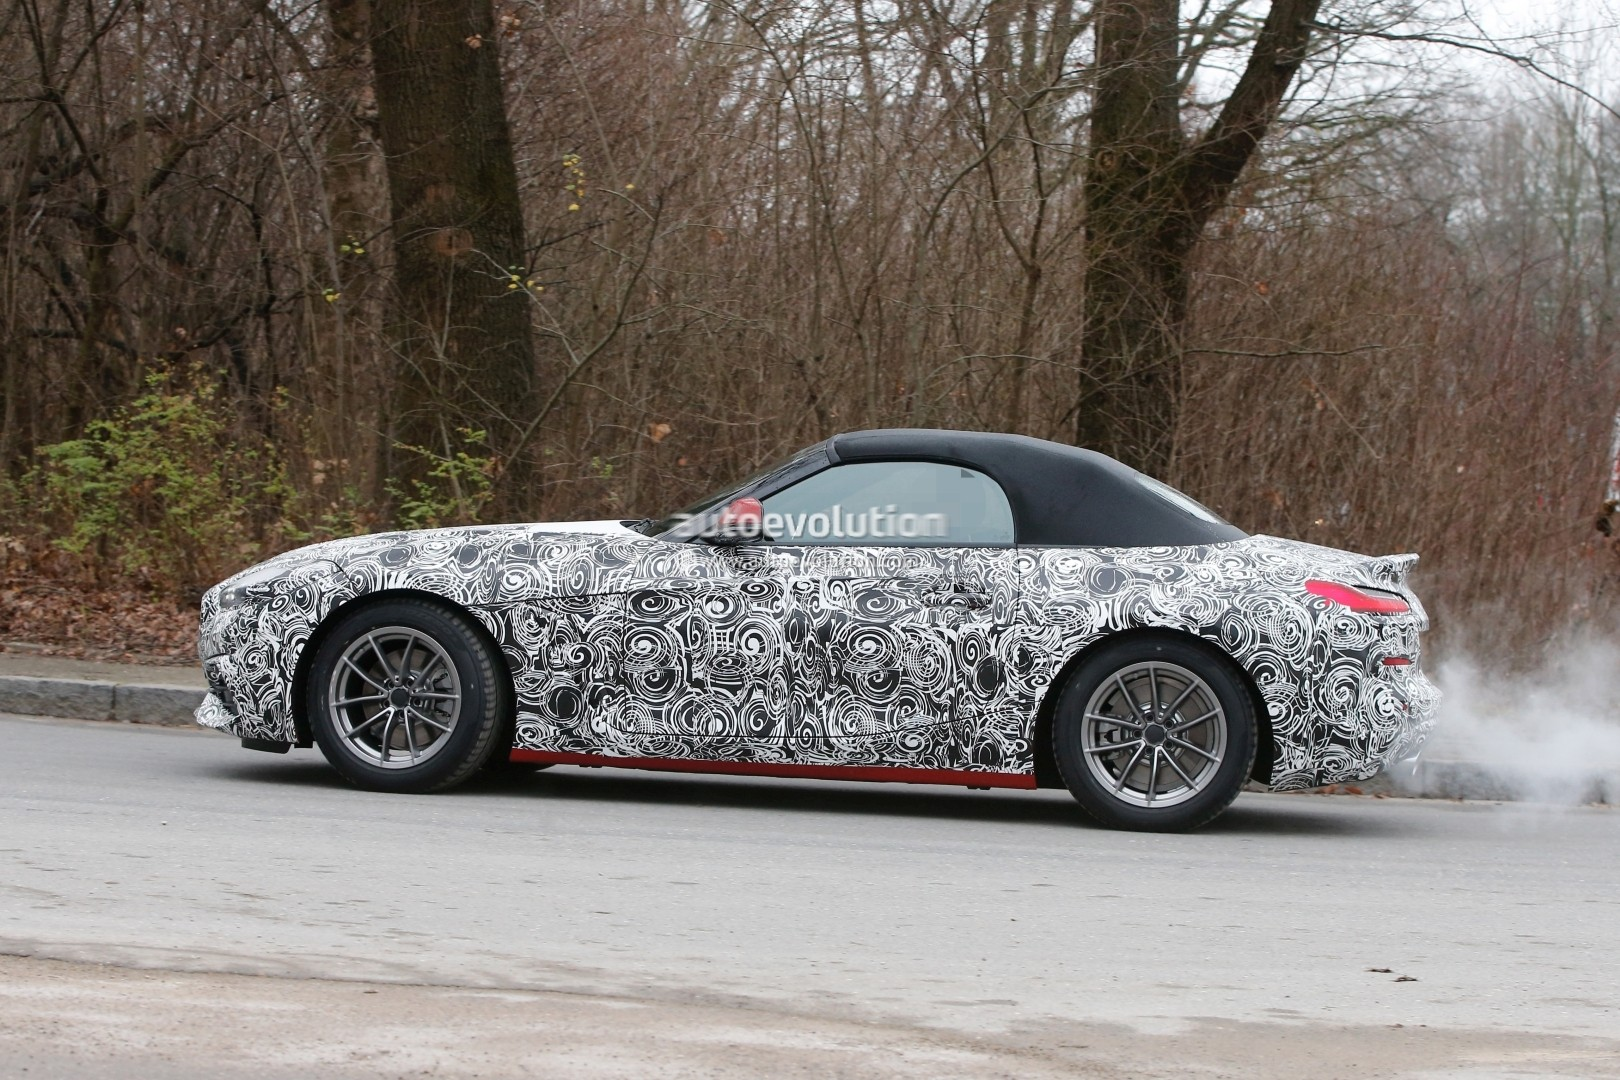 spyshots 2019 bmw z4 reveals new details plug in hybrid rumors intensify autoevolution. Black Bedroom Furniture Sets. Home Design Ideas